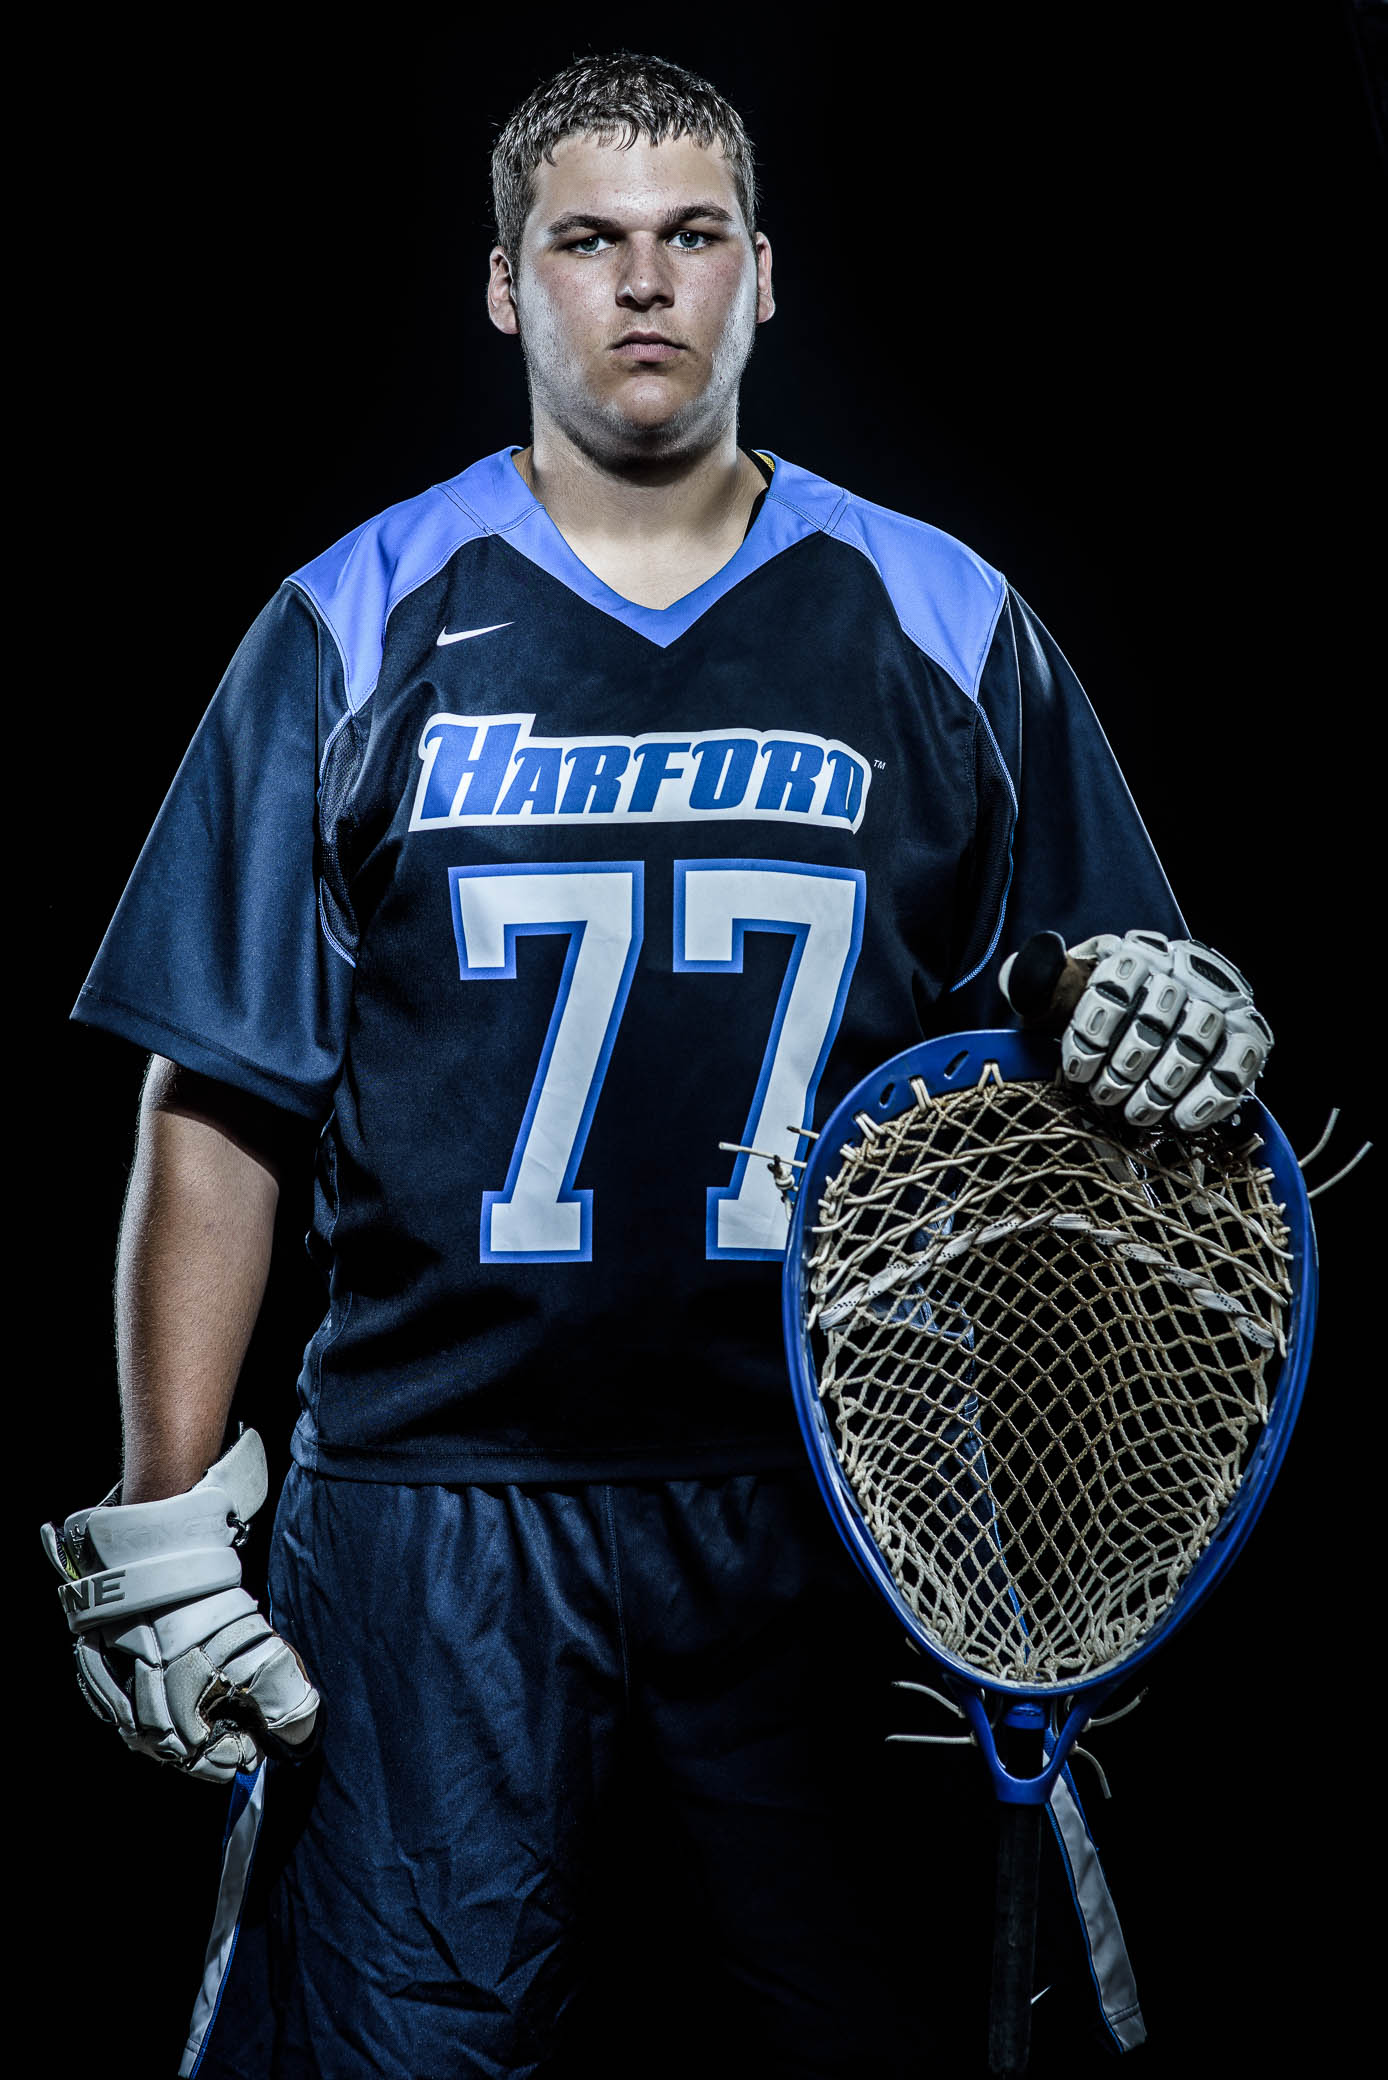 Harford Fighting Owls-0183-2